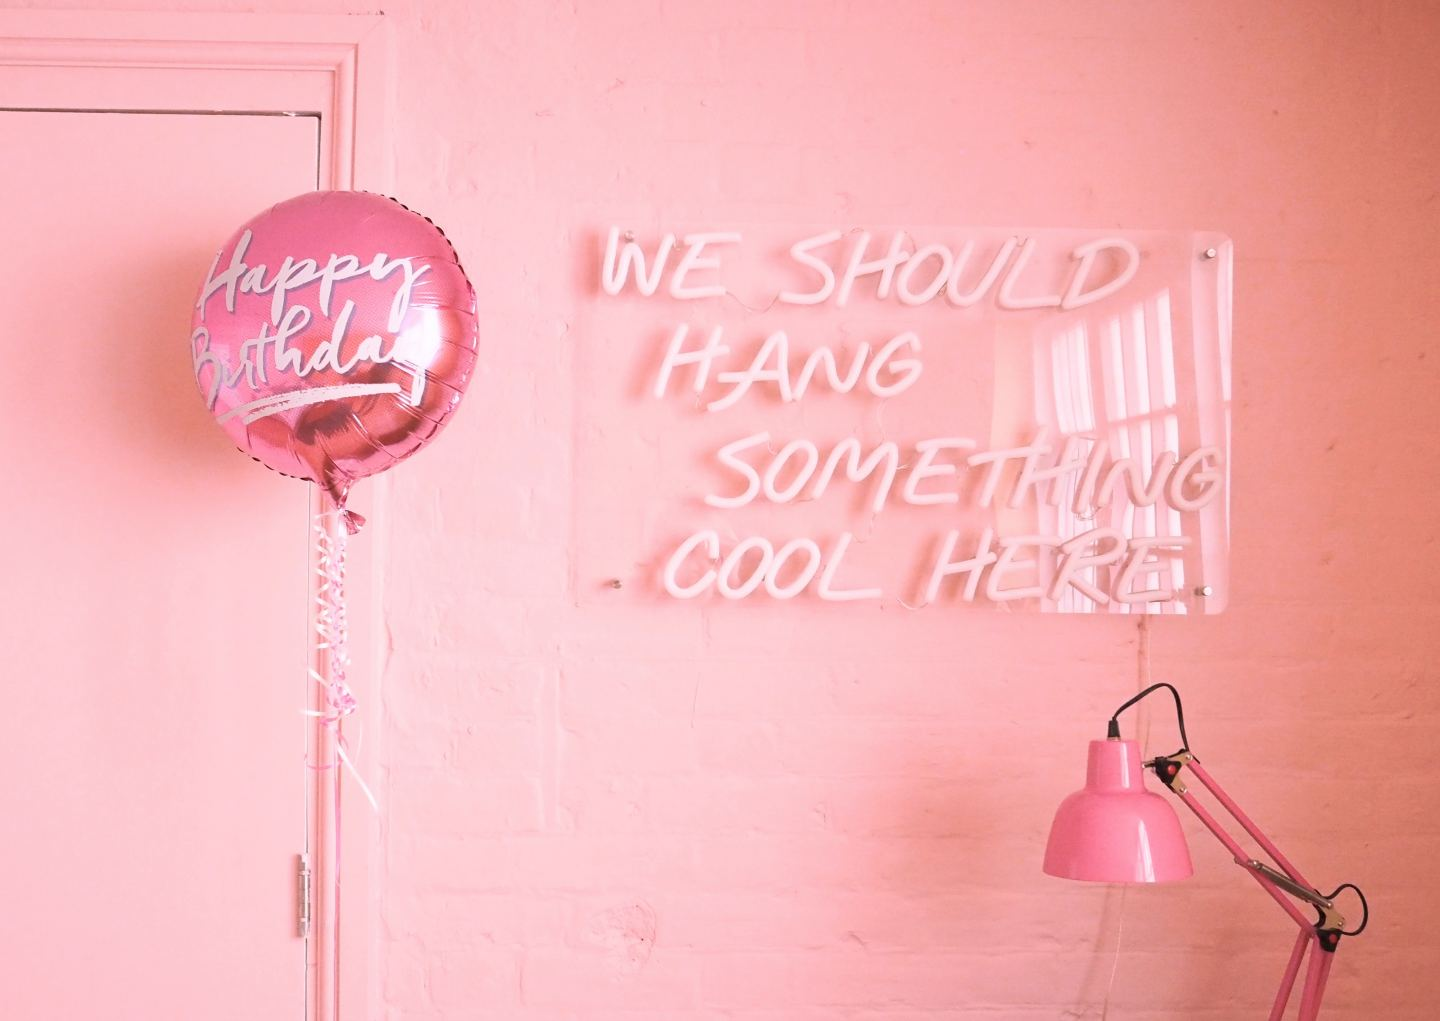 airbnb birthday balloon pink neon sign